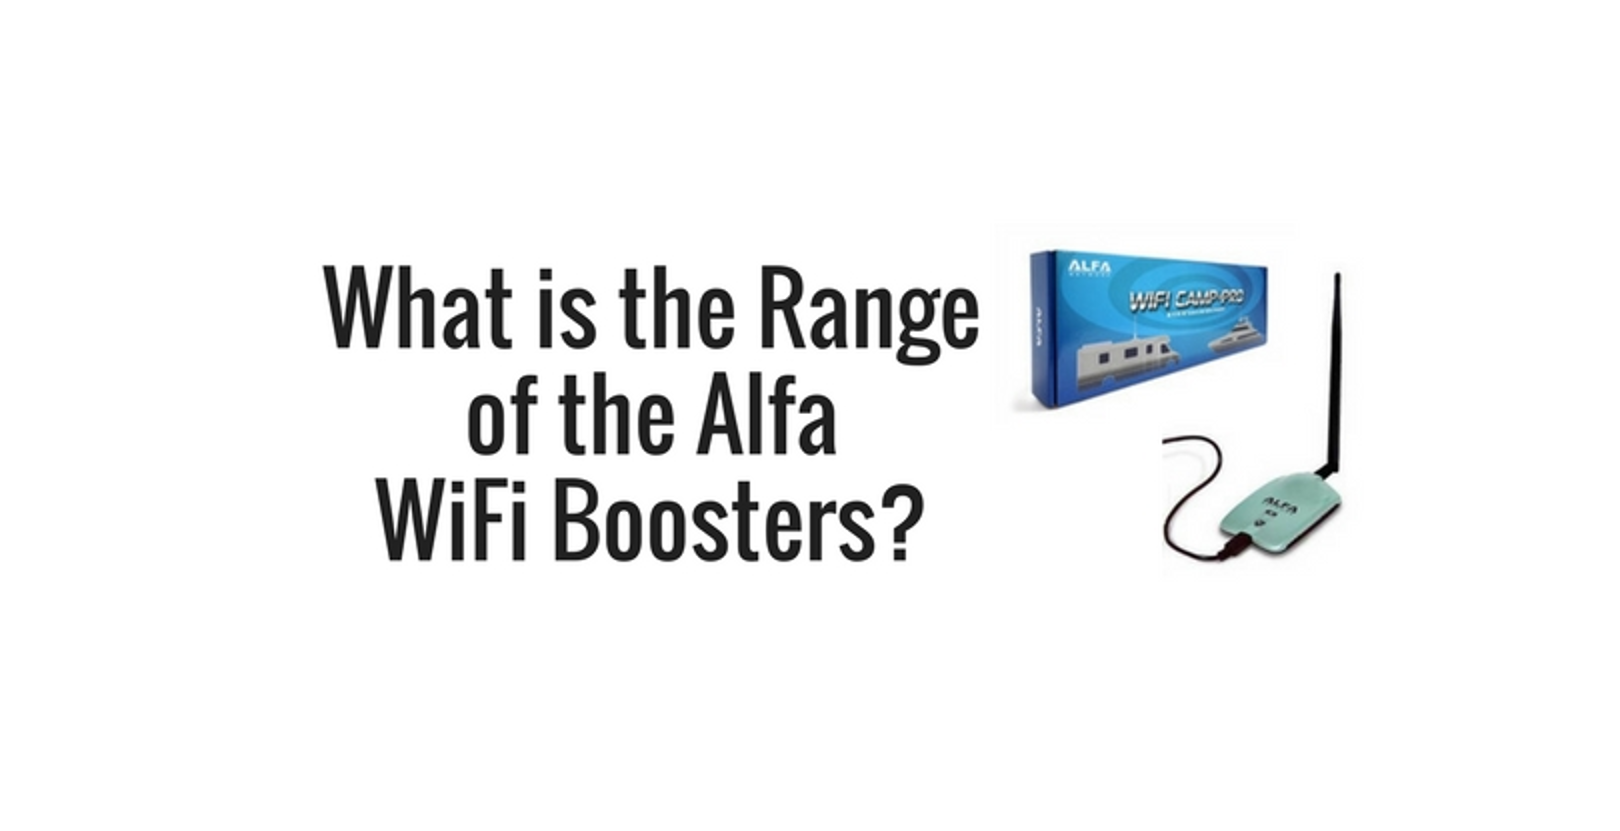 What is the Range of the Alfa WiFi Boosters?